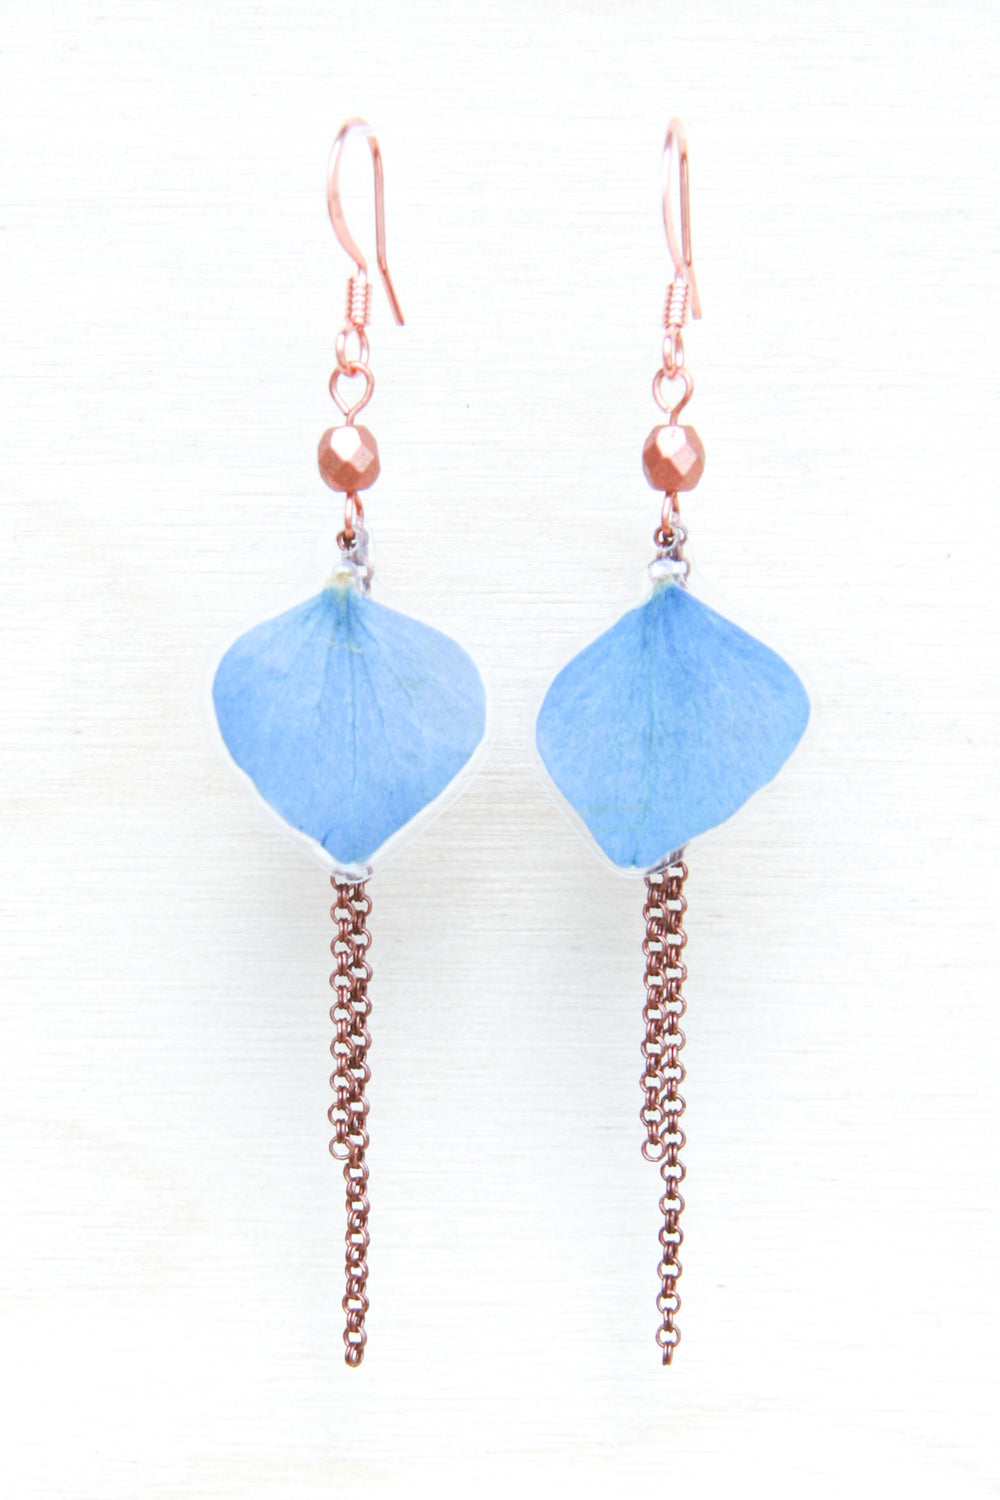 Blue Hydrangea Petal Earrings with Copper Beads & Dangles